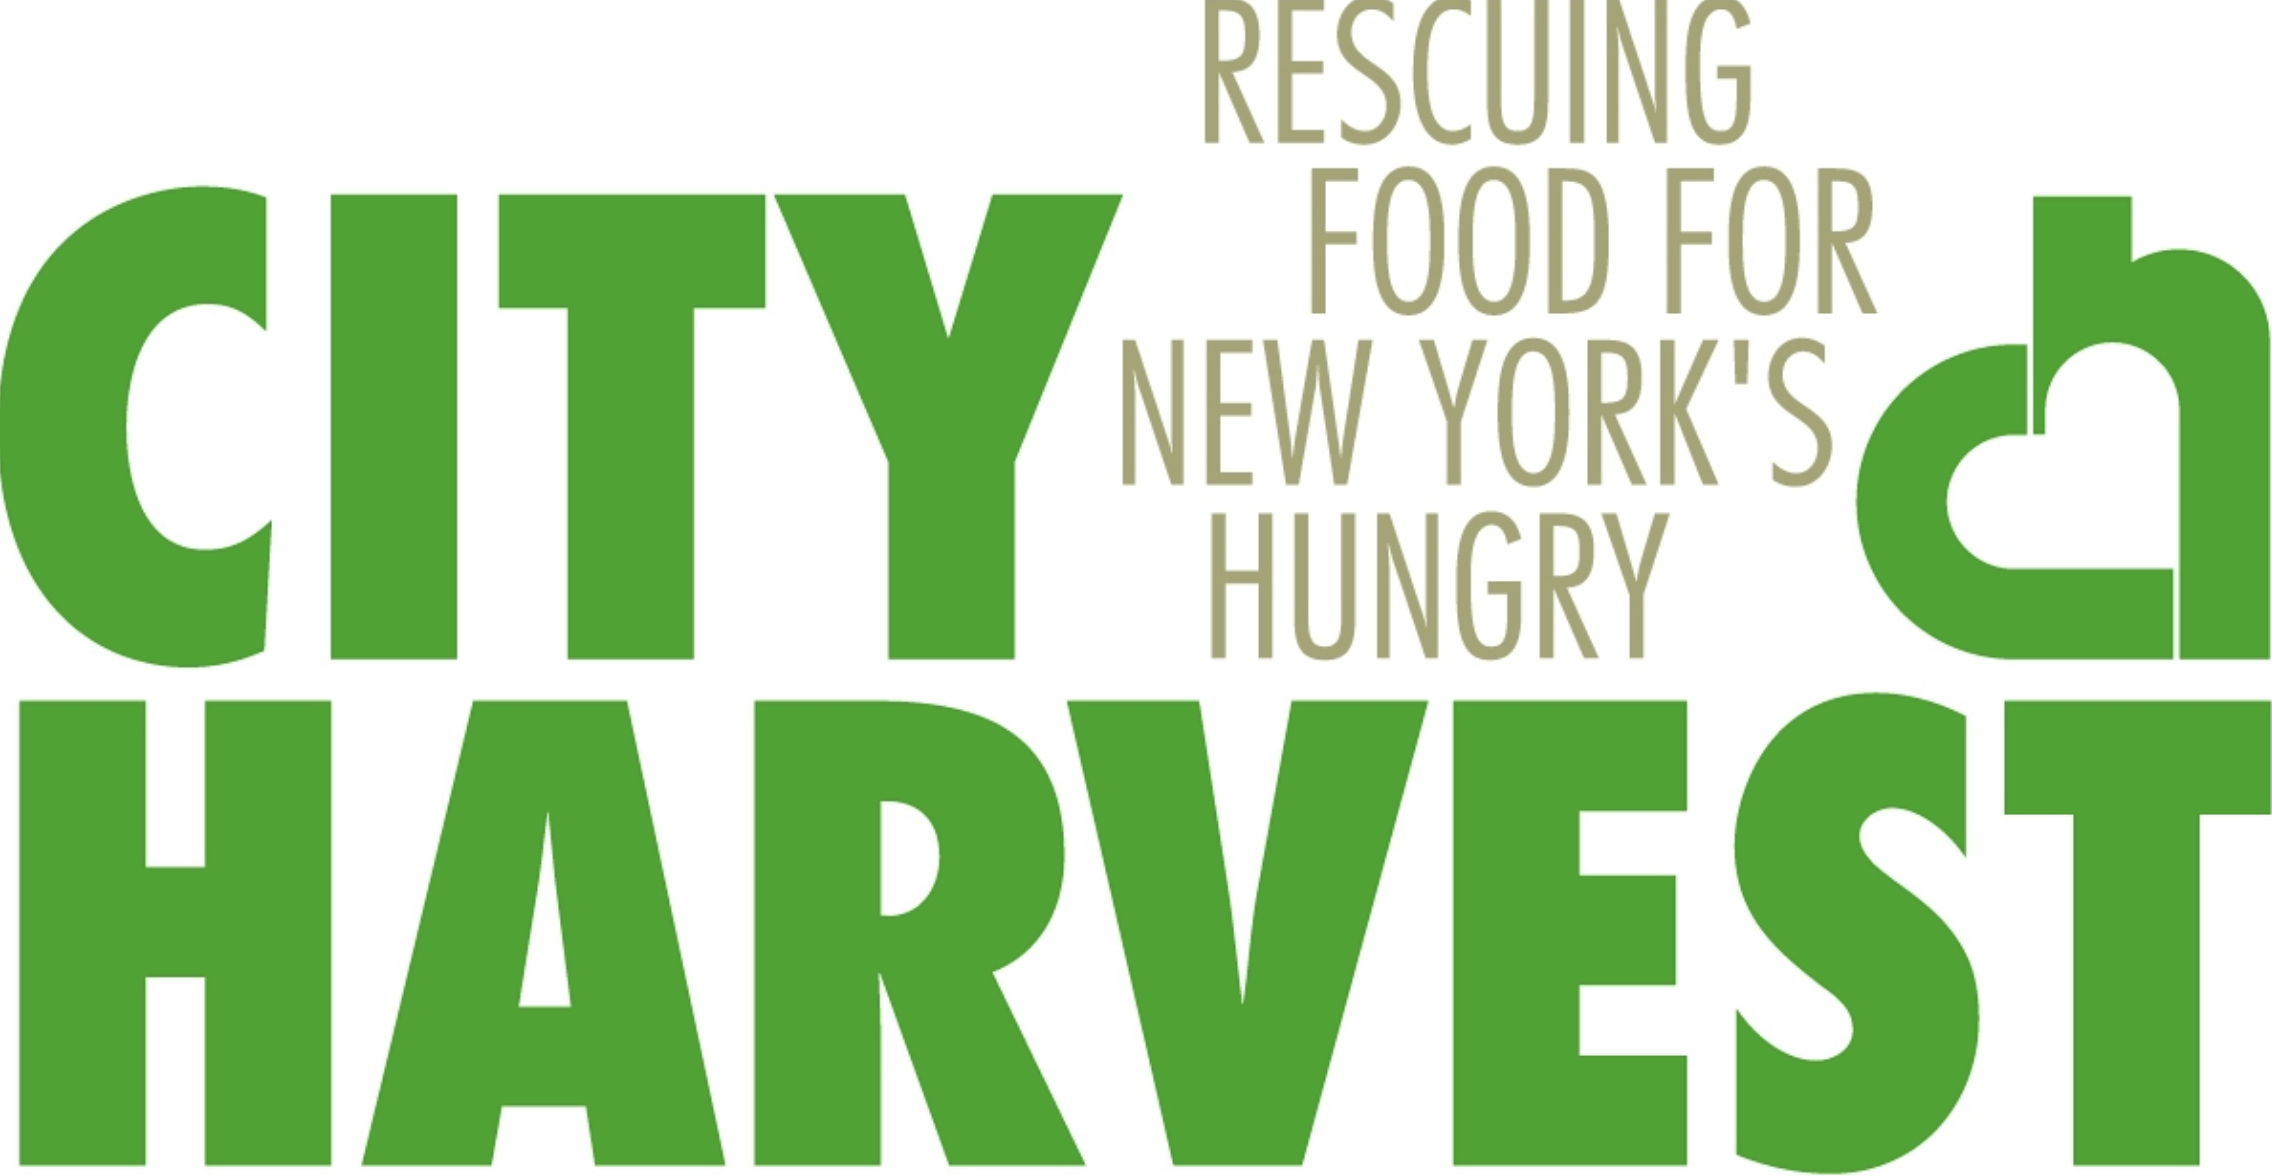 For many people that City Harvest serves, local stores don't stock much healthy food, or when they do it's too expensive. Through our  Healthy Neighborhoods programs, we work with community partners in low income neighborhoods across New York City to improve access to healthy, affordable food. We do this by providing free fruits and vegetables through our Mobile Markets, and working with local food retailers to increase their ability to stock and sell healthy food. We also teach residents the basics of nutrition and how to shop for and cook healthy meals on a budget.  In addition to helping meet the immediate need for food, City Harvest takes a long-term approach to hunger relief through these programs which can be found in the South Bronx, Northwest Queens, the North Shore of Staten Island, Bed Stuy in Brooklyn, and Washington Heights/Inwood.